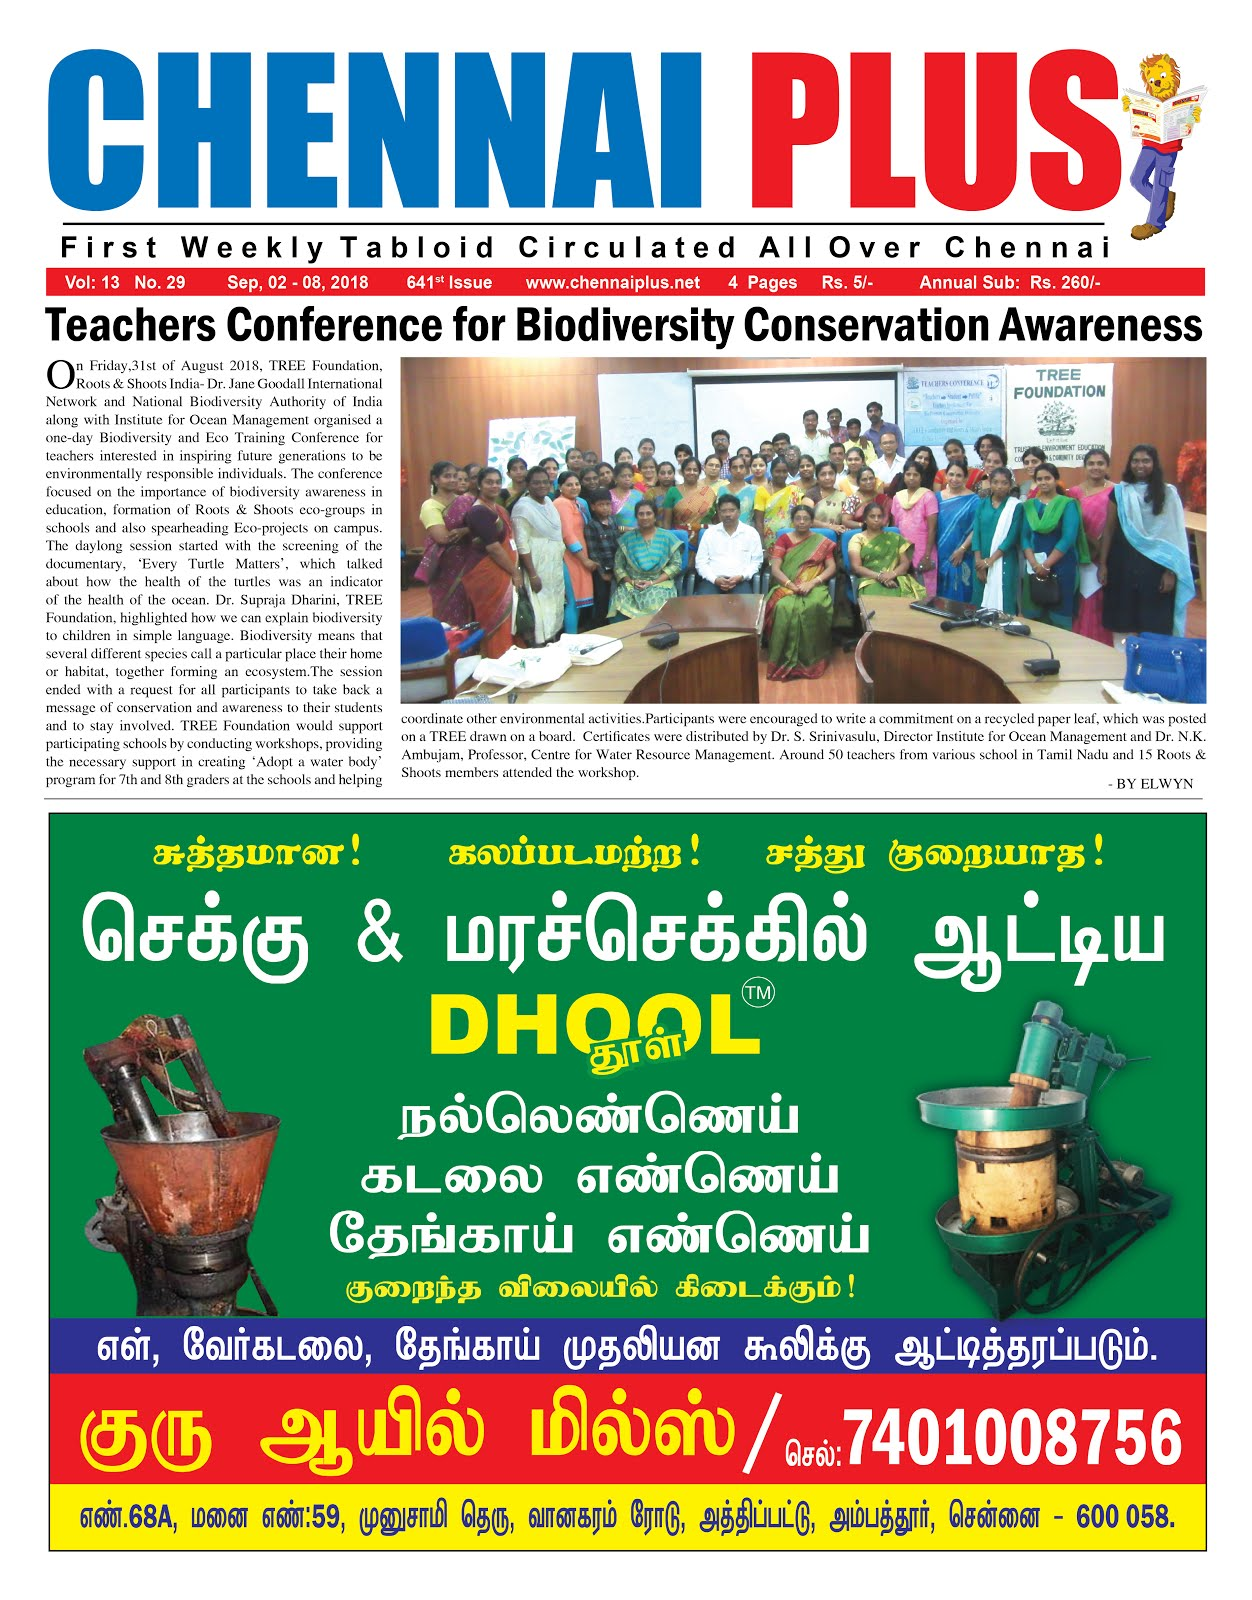 Chennai Plus_02.09.2018_Issue